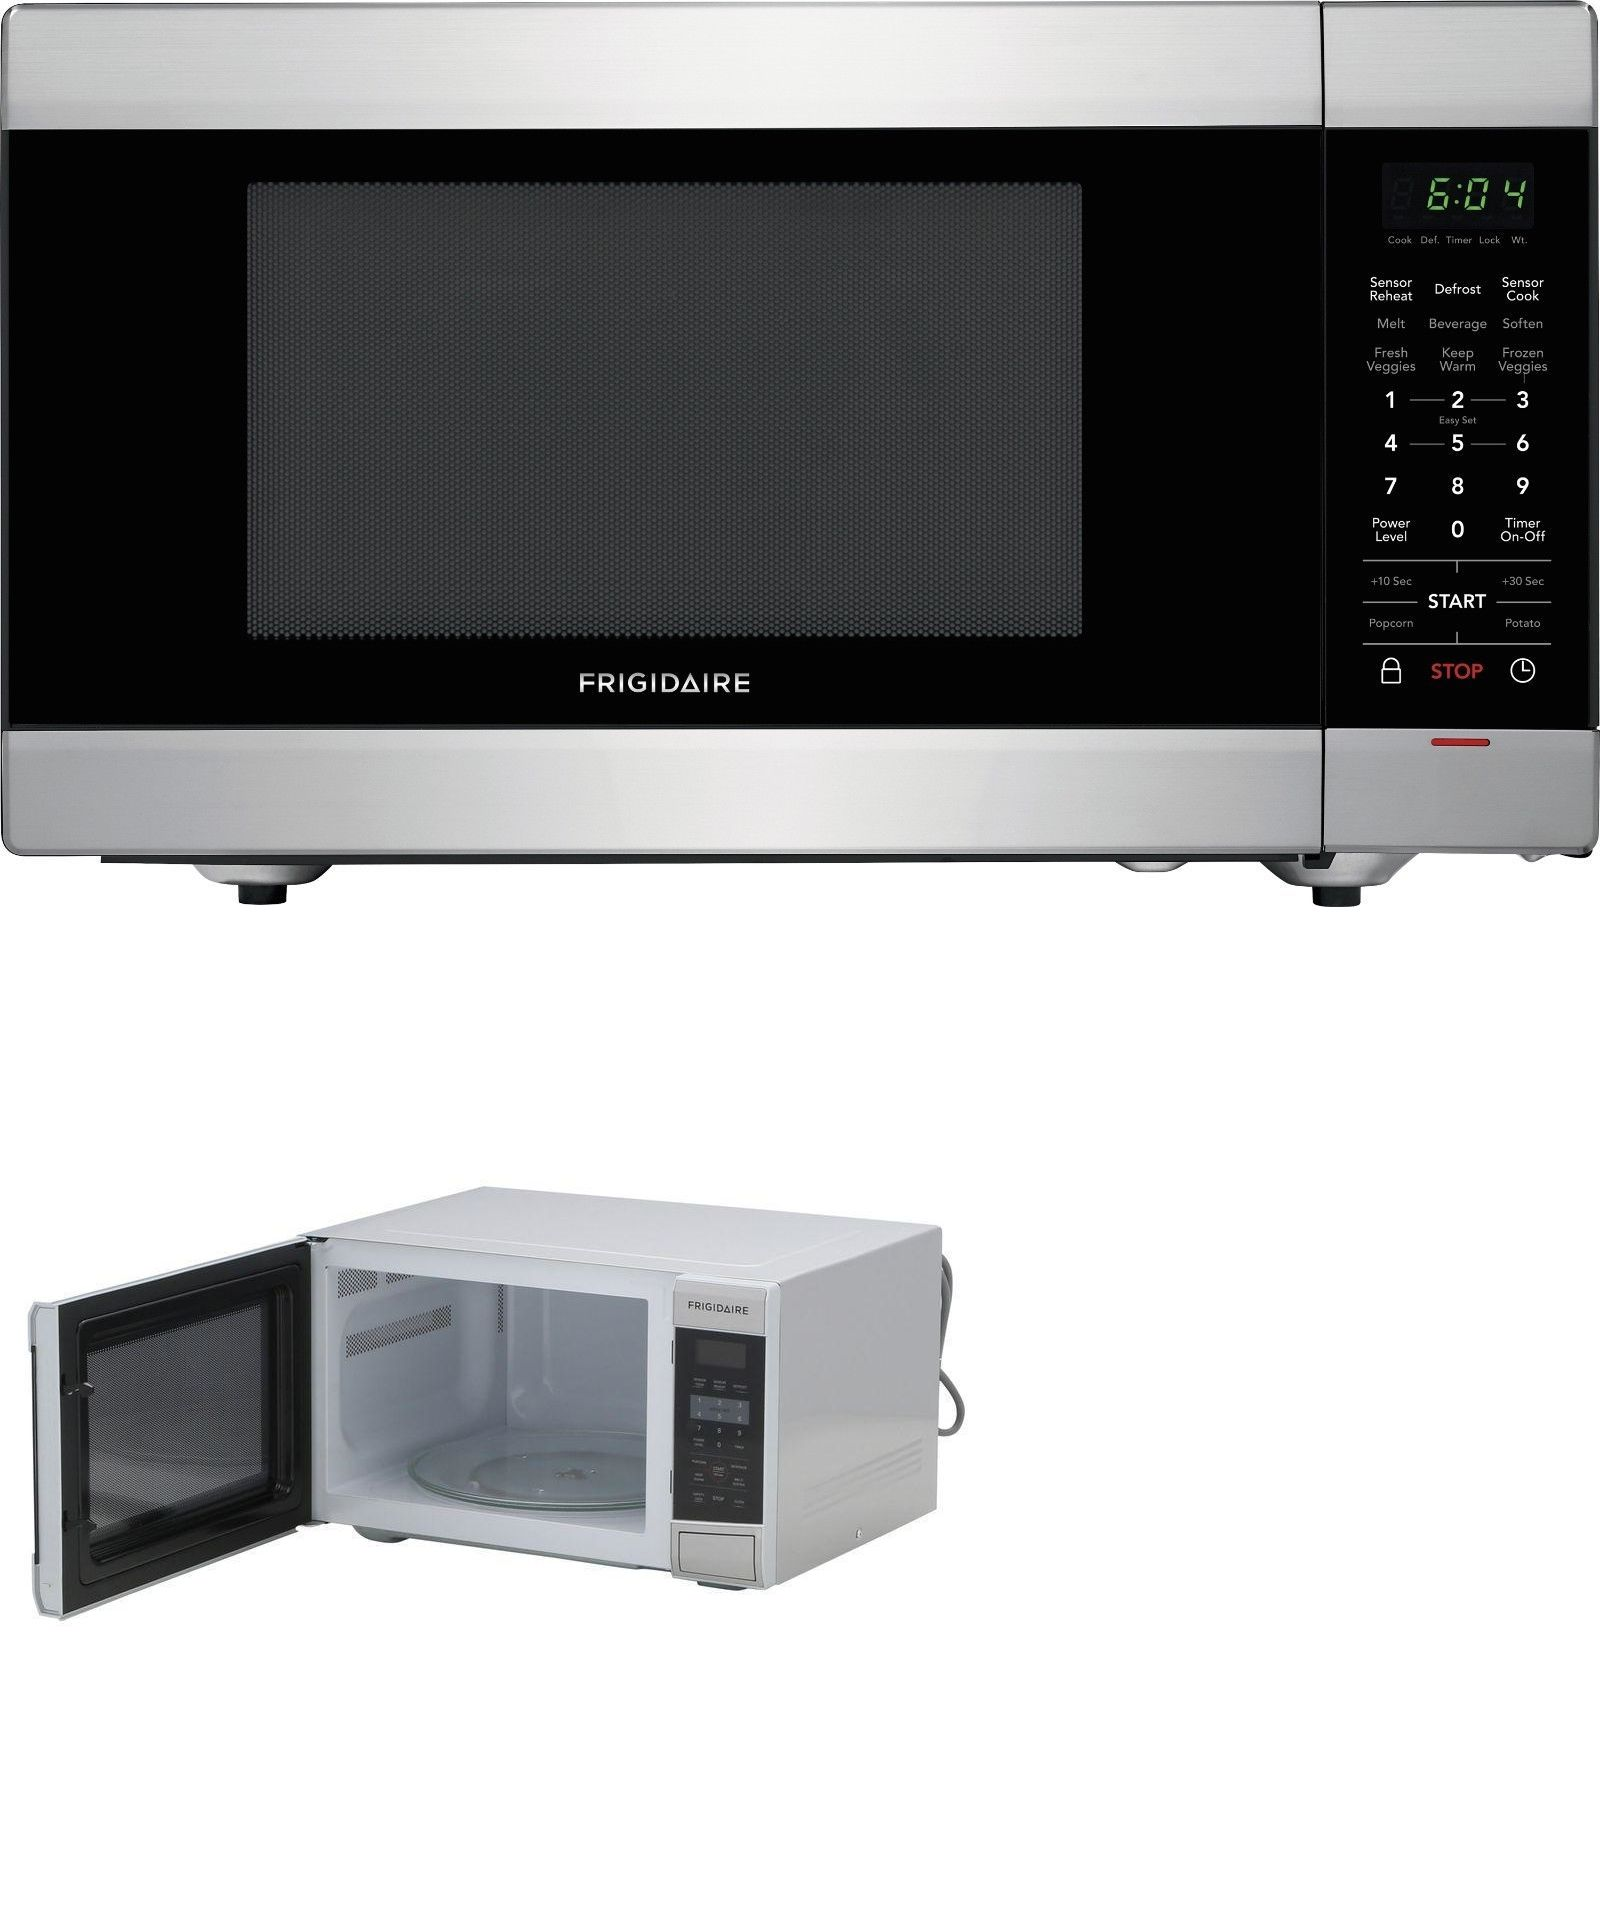 Microwave Ovens 150140 Frigidaire 1 6 Cu Ft Stainless Steel